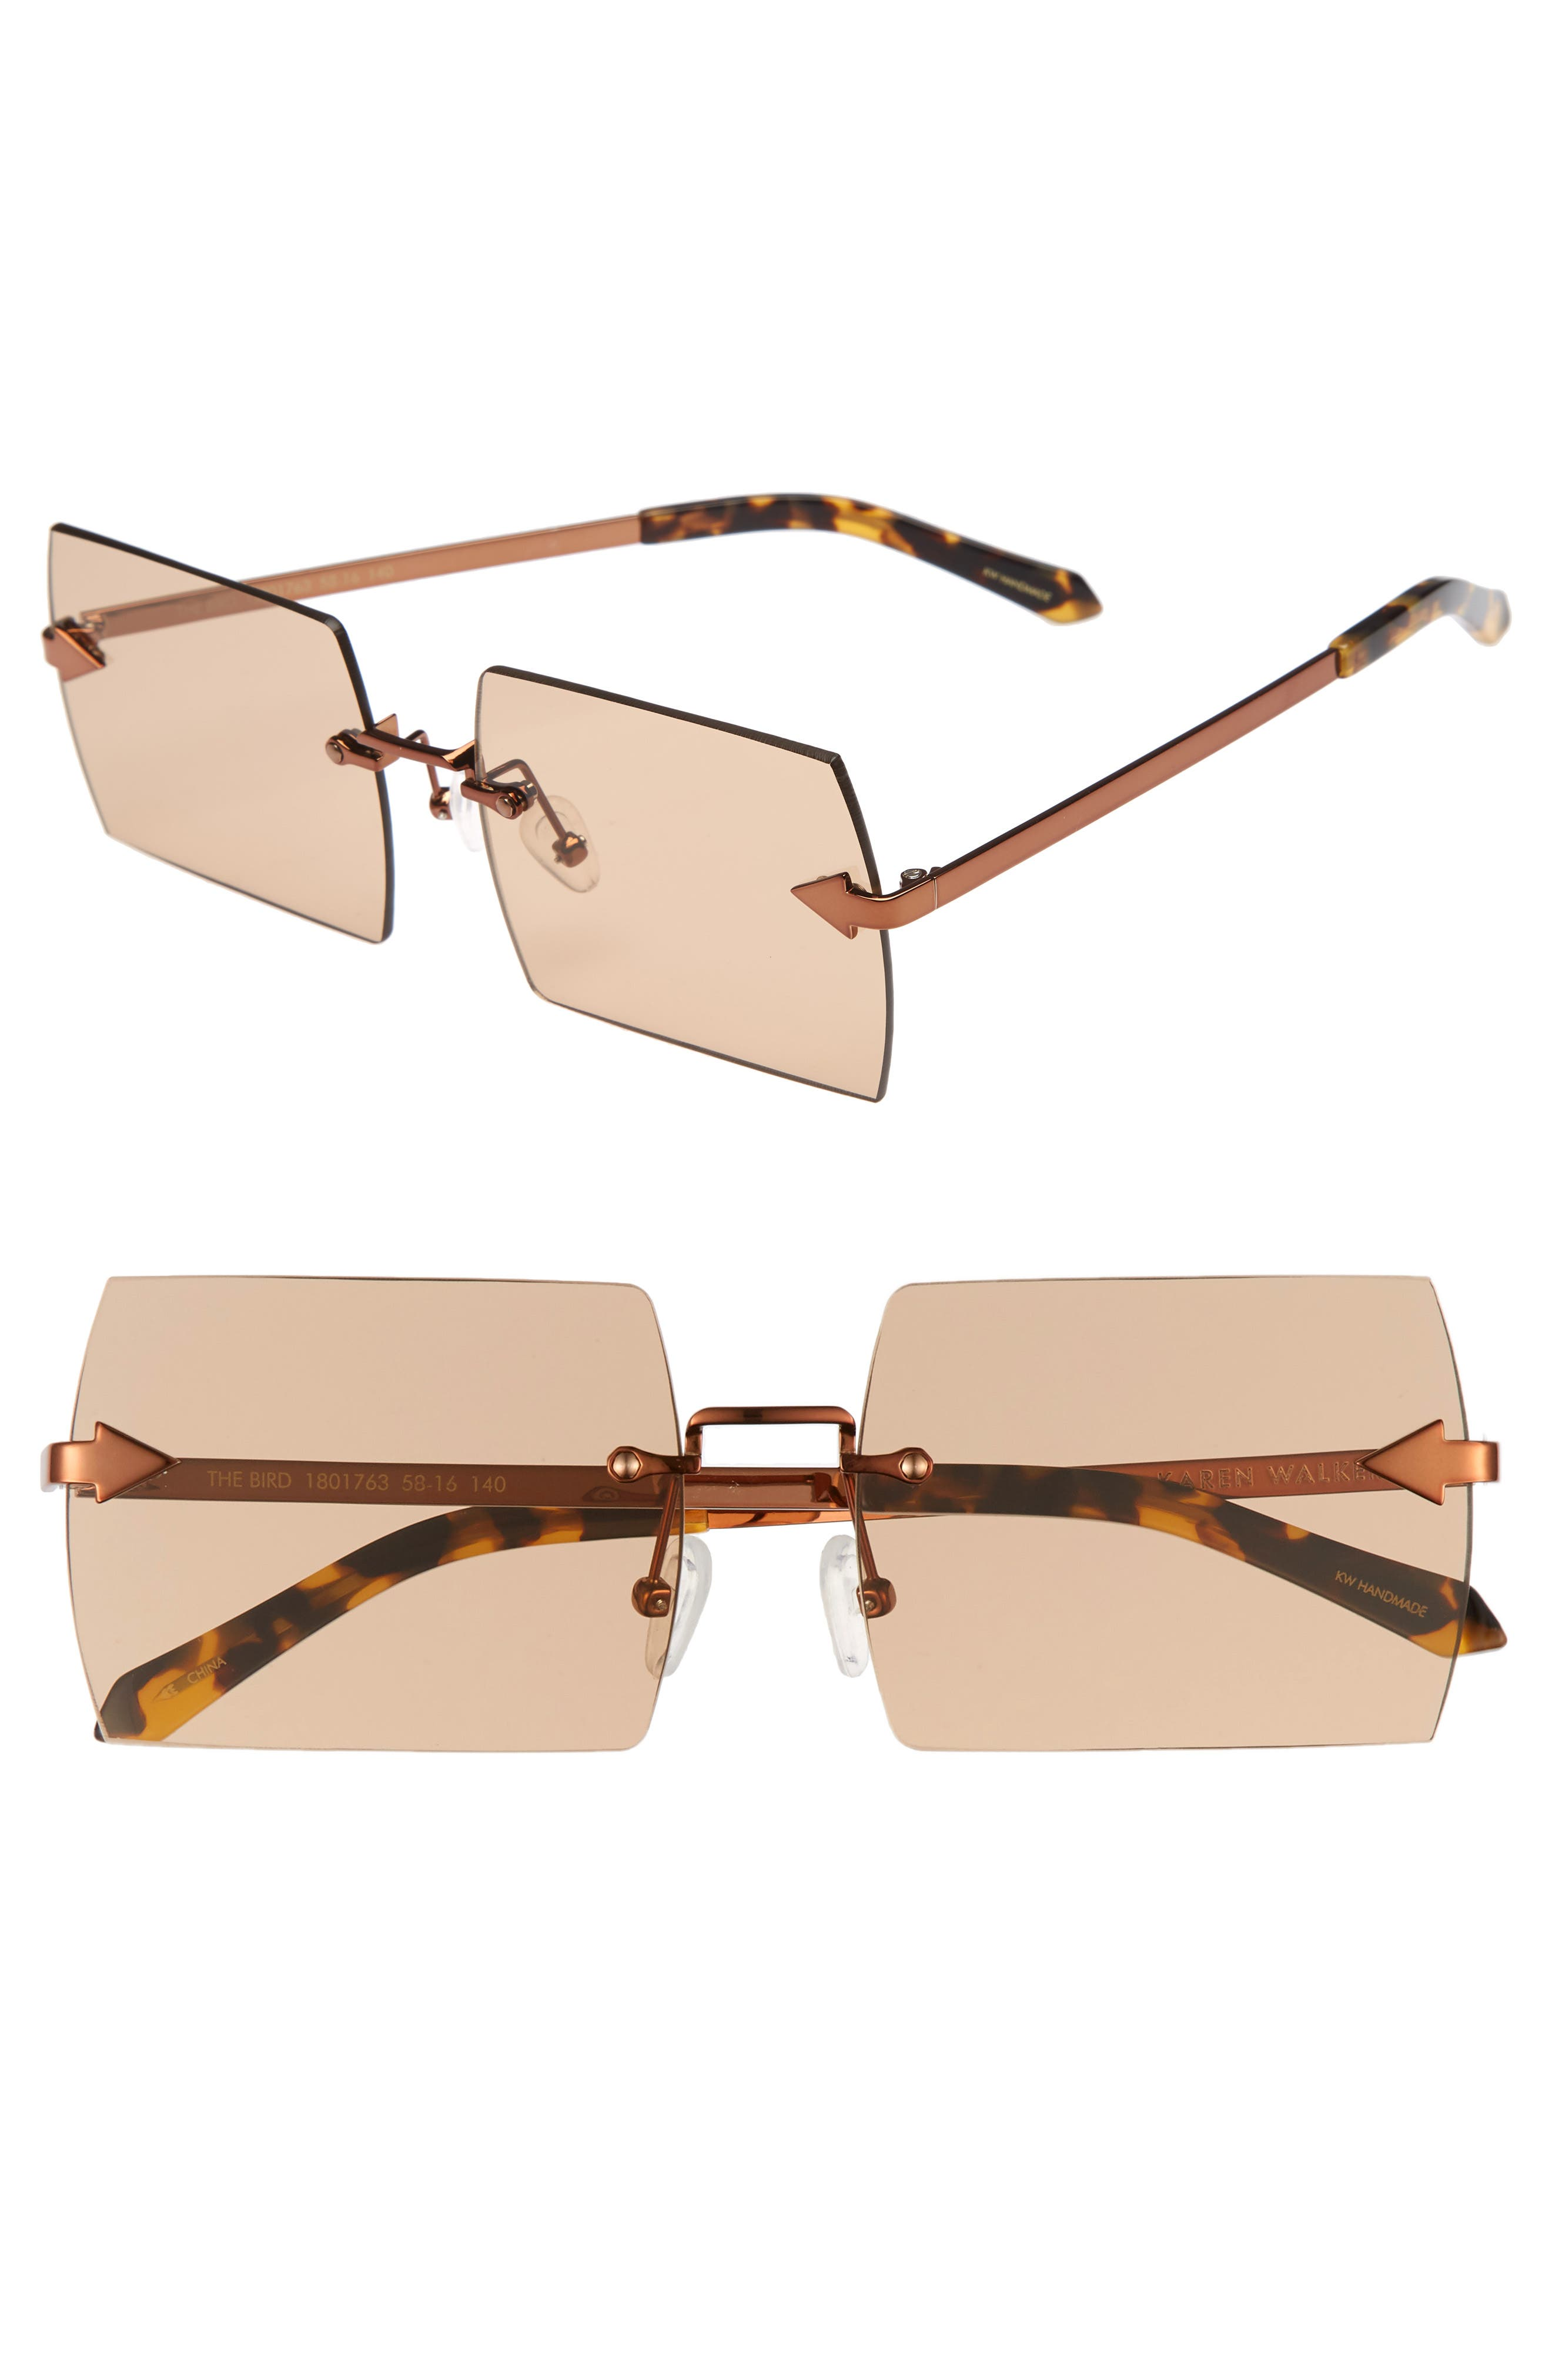 The Bird 58mm Rimless Sunglasses,                         Main,                         color, LIGHT BROWN